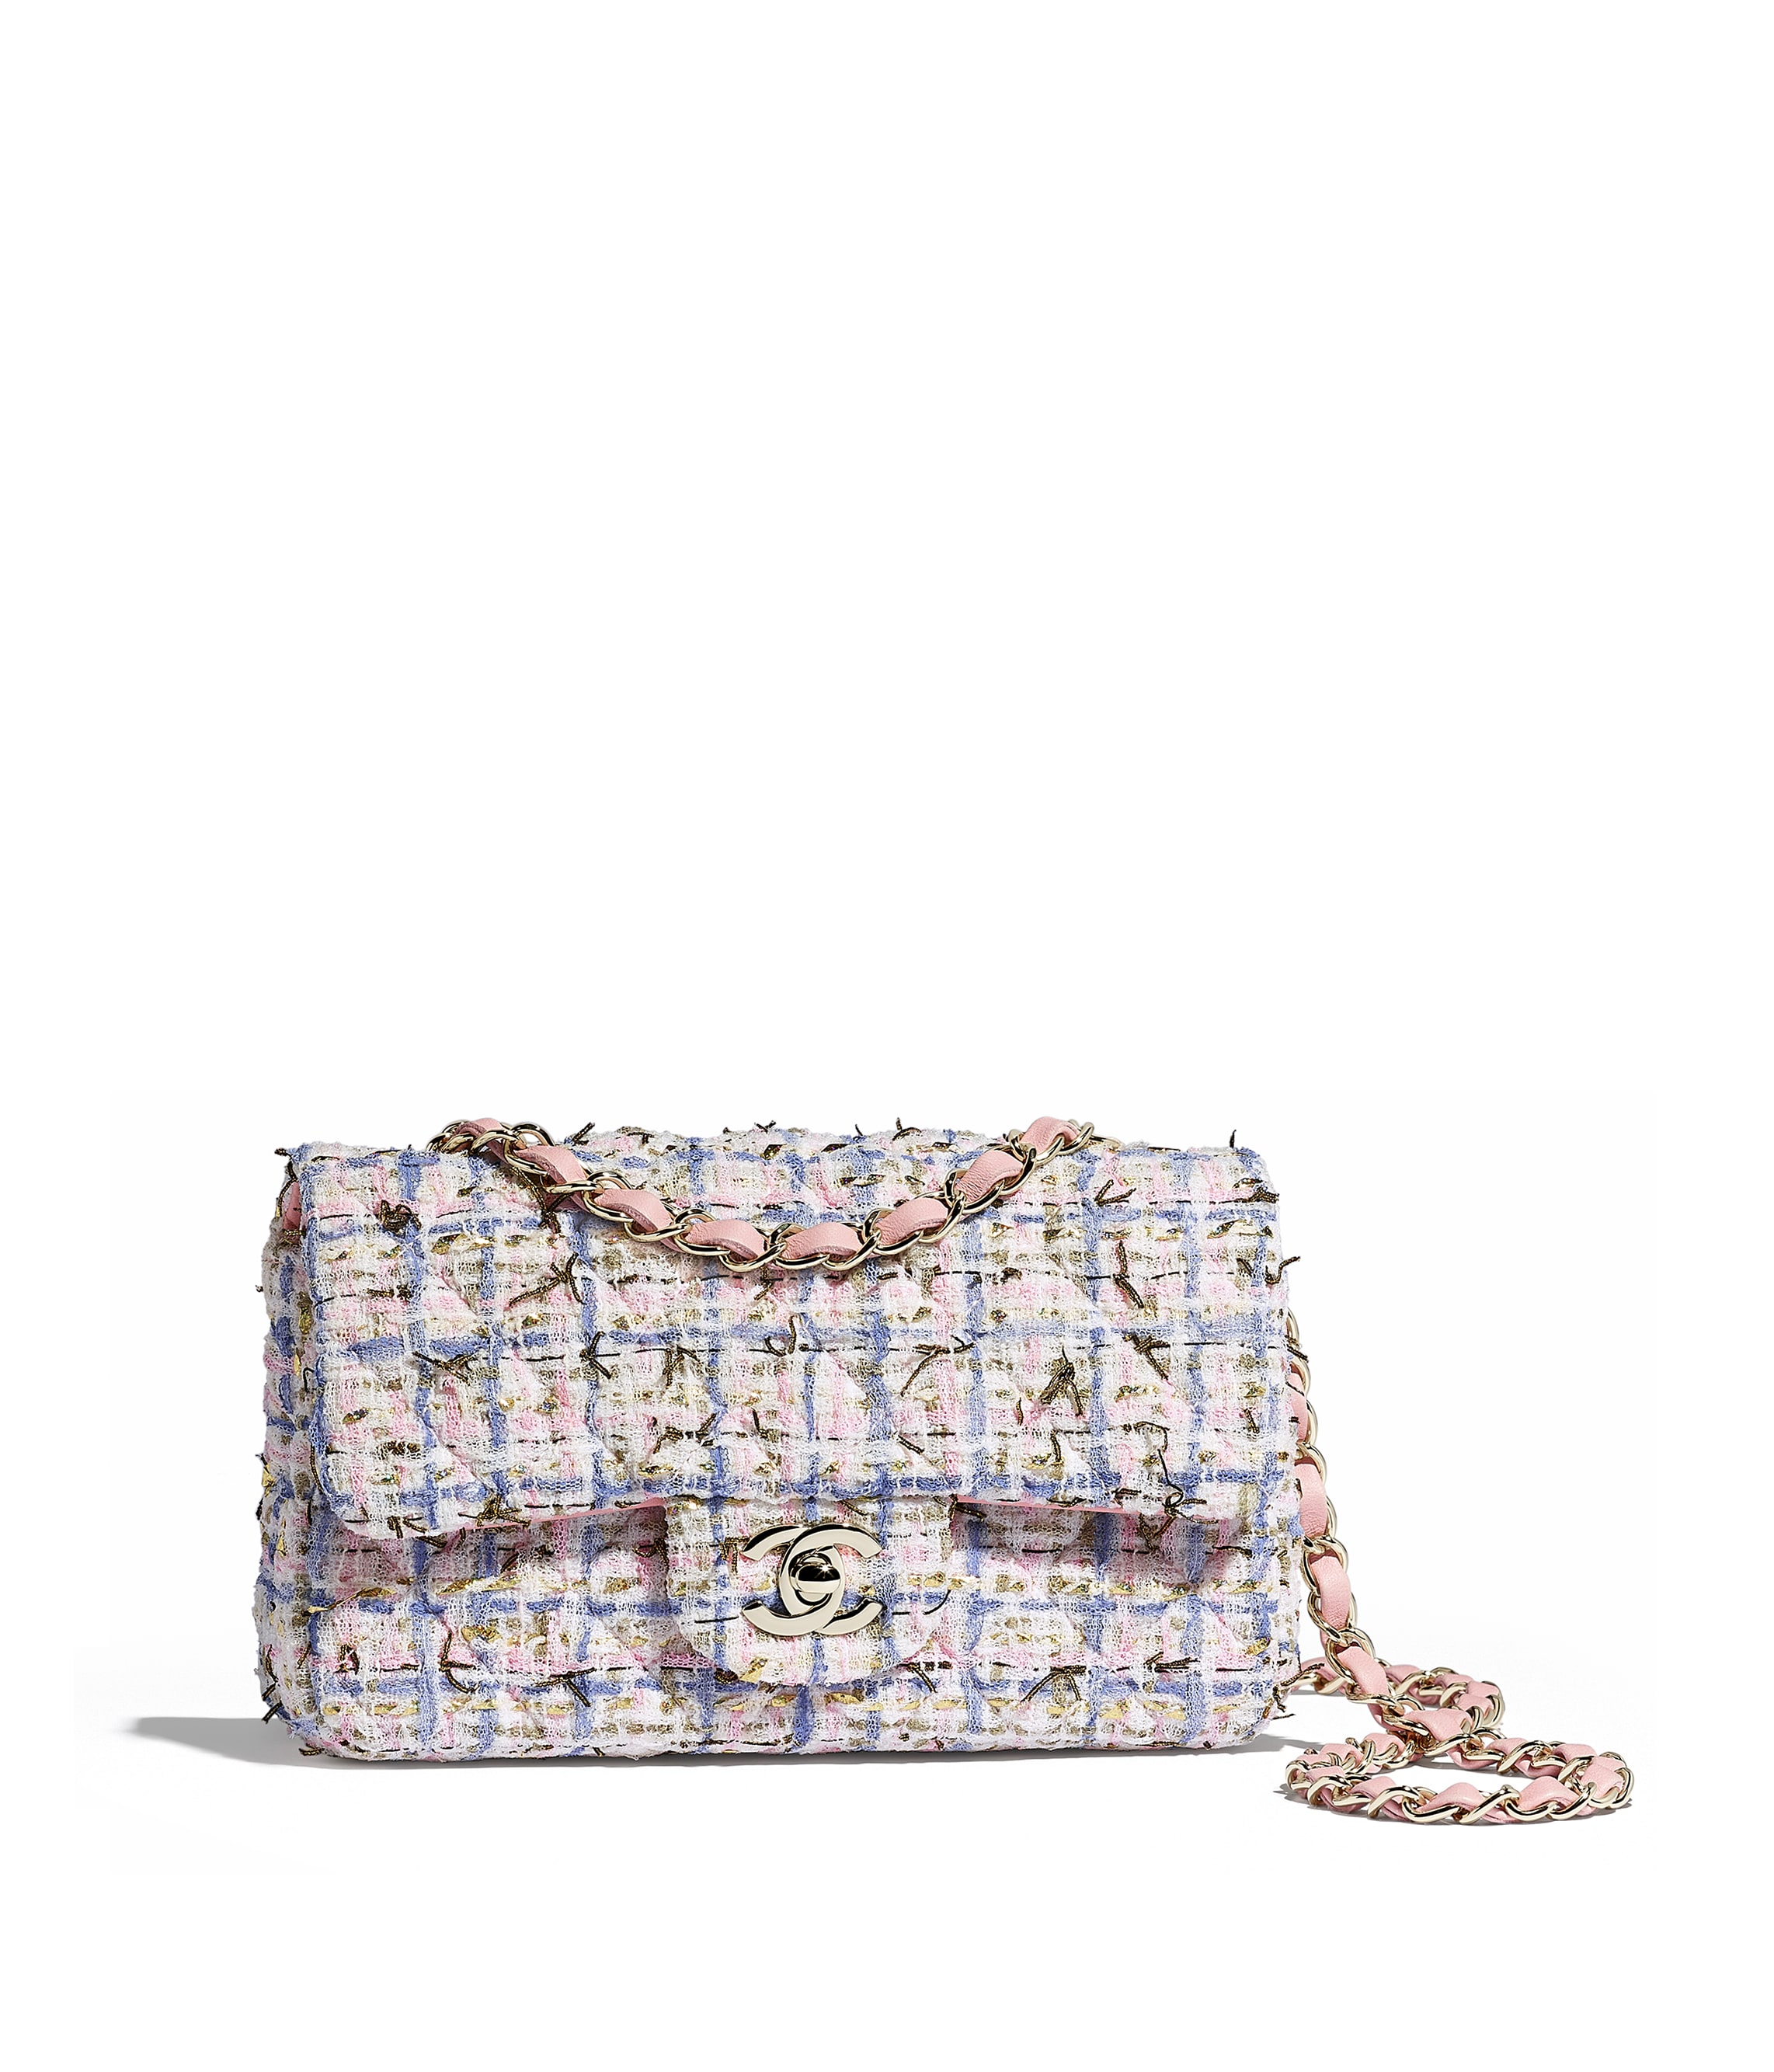 3c167eab9958ad Mini Flap Bag, tweed & gold metal, blue, pink & gold - CHANEL